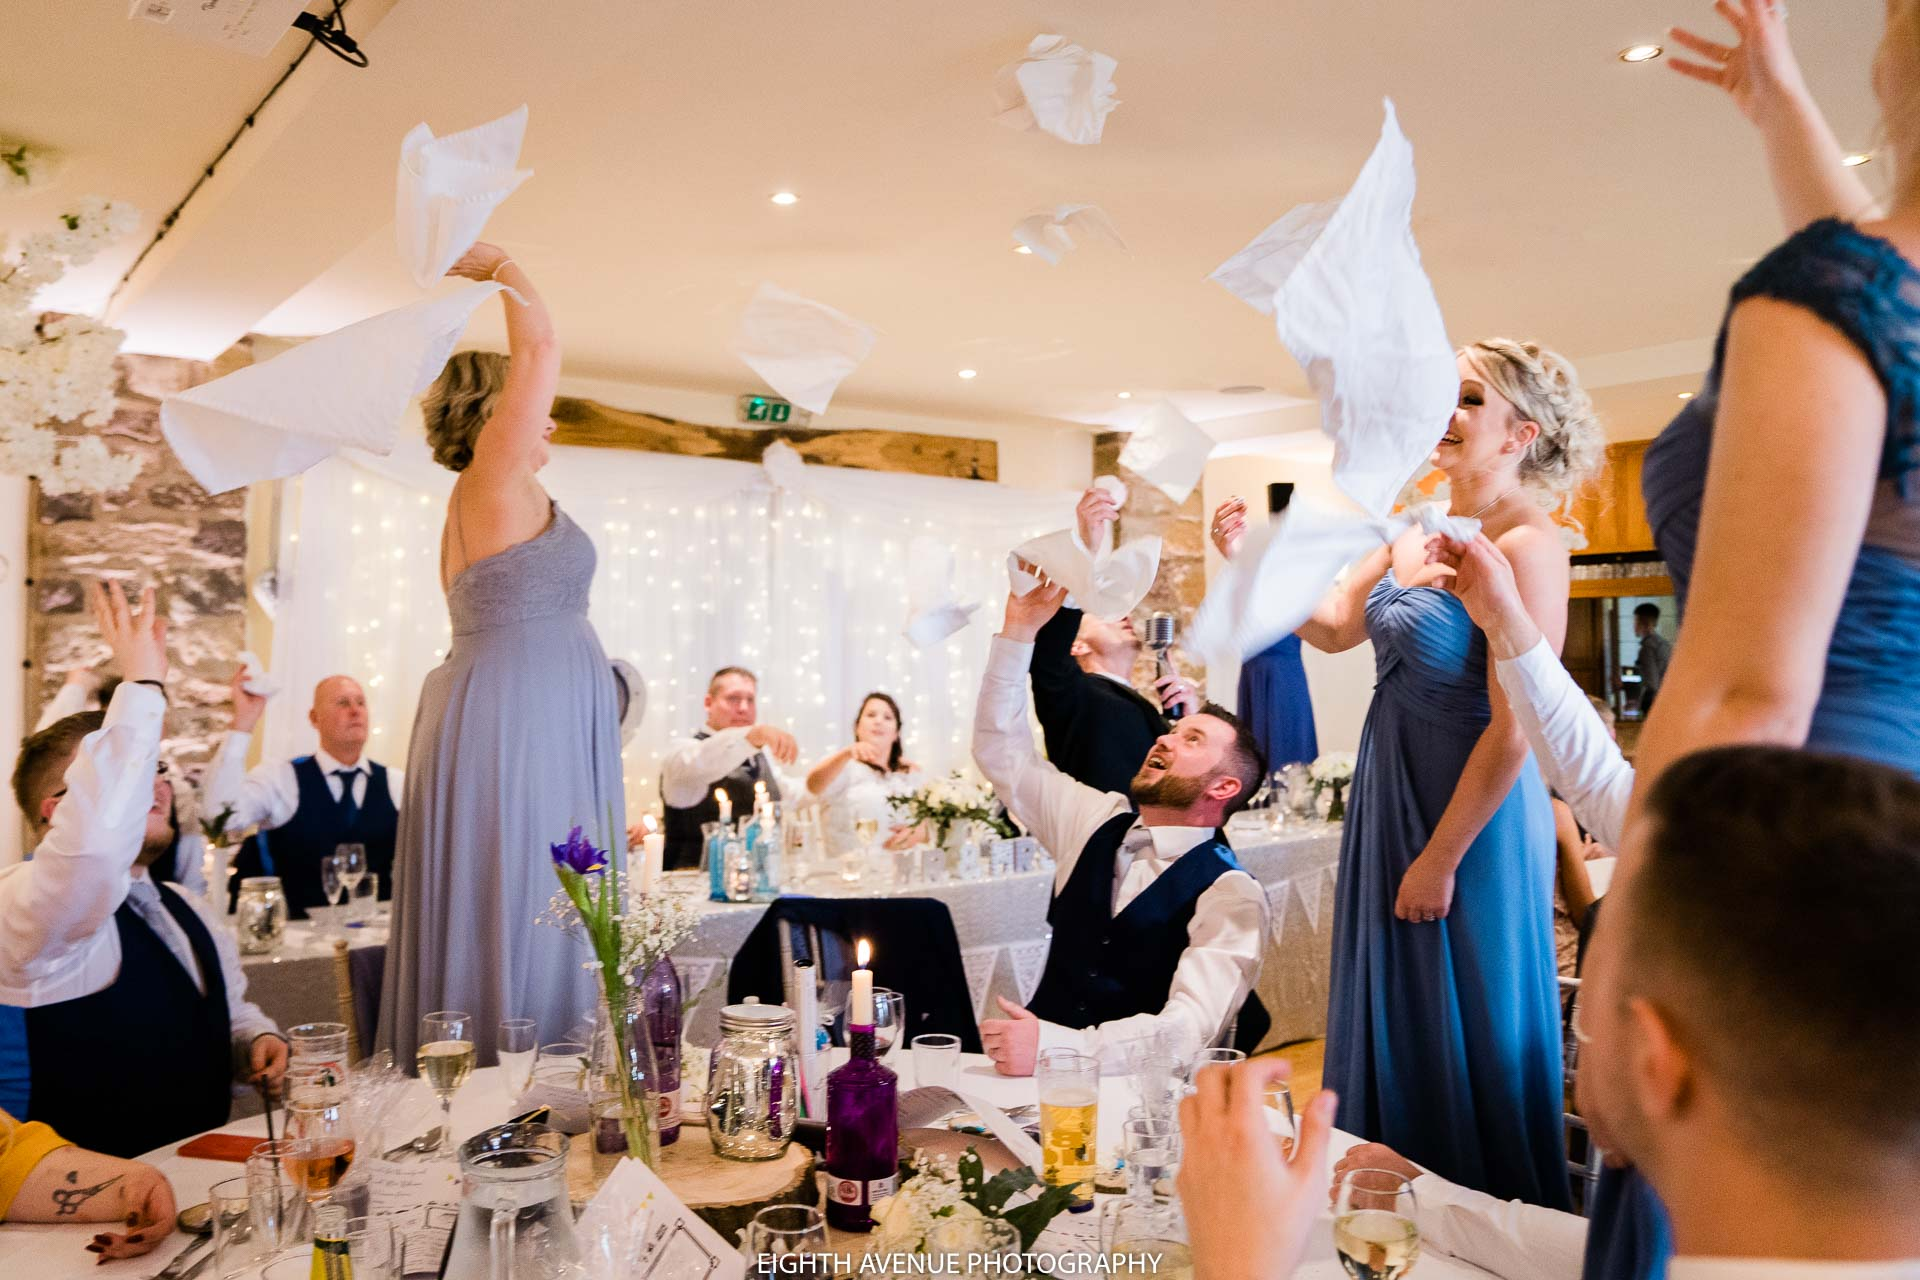 guests throwing knapkins in the air at wedding